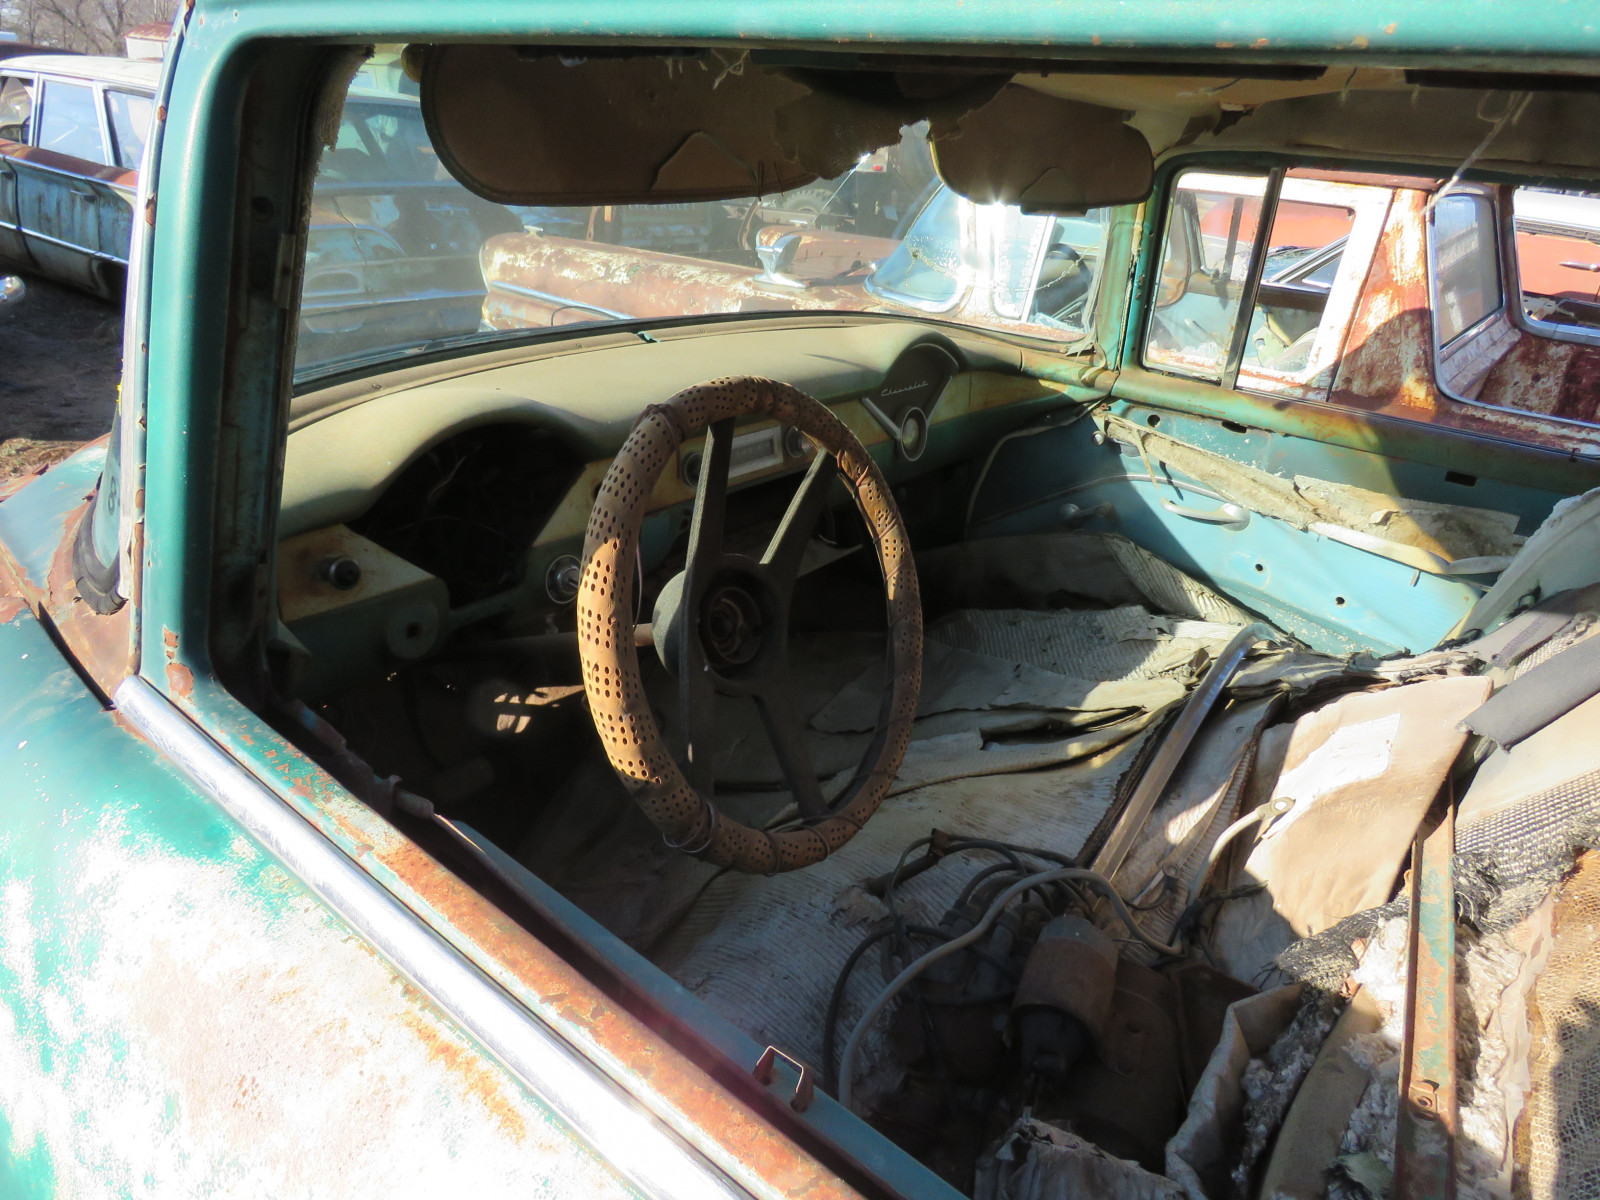 1955 Chevrolet 4dr Sedan for parts - Image 5